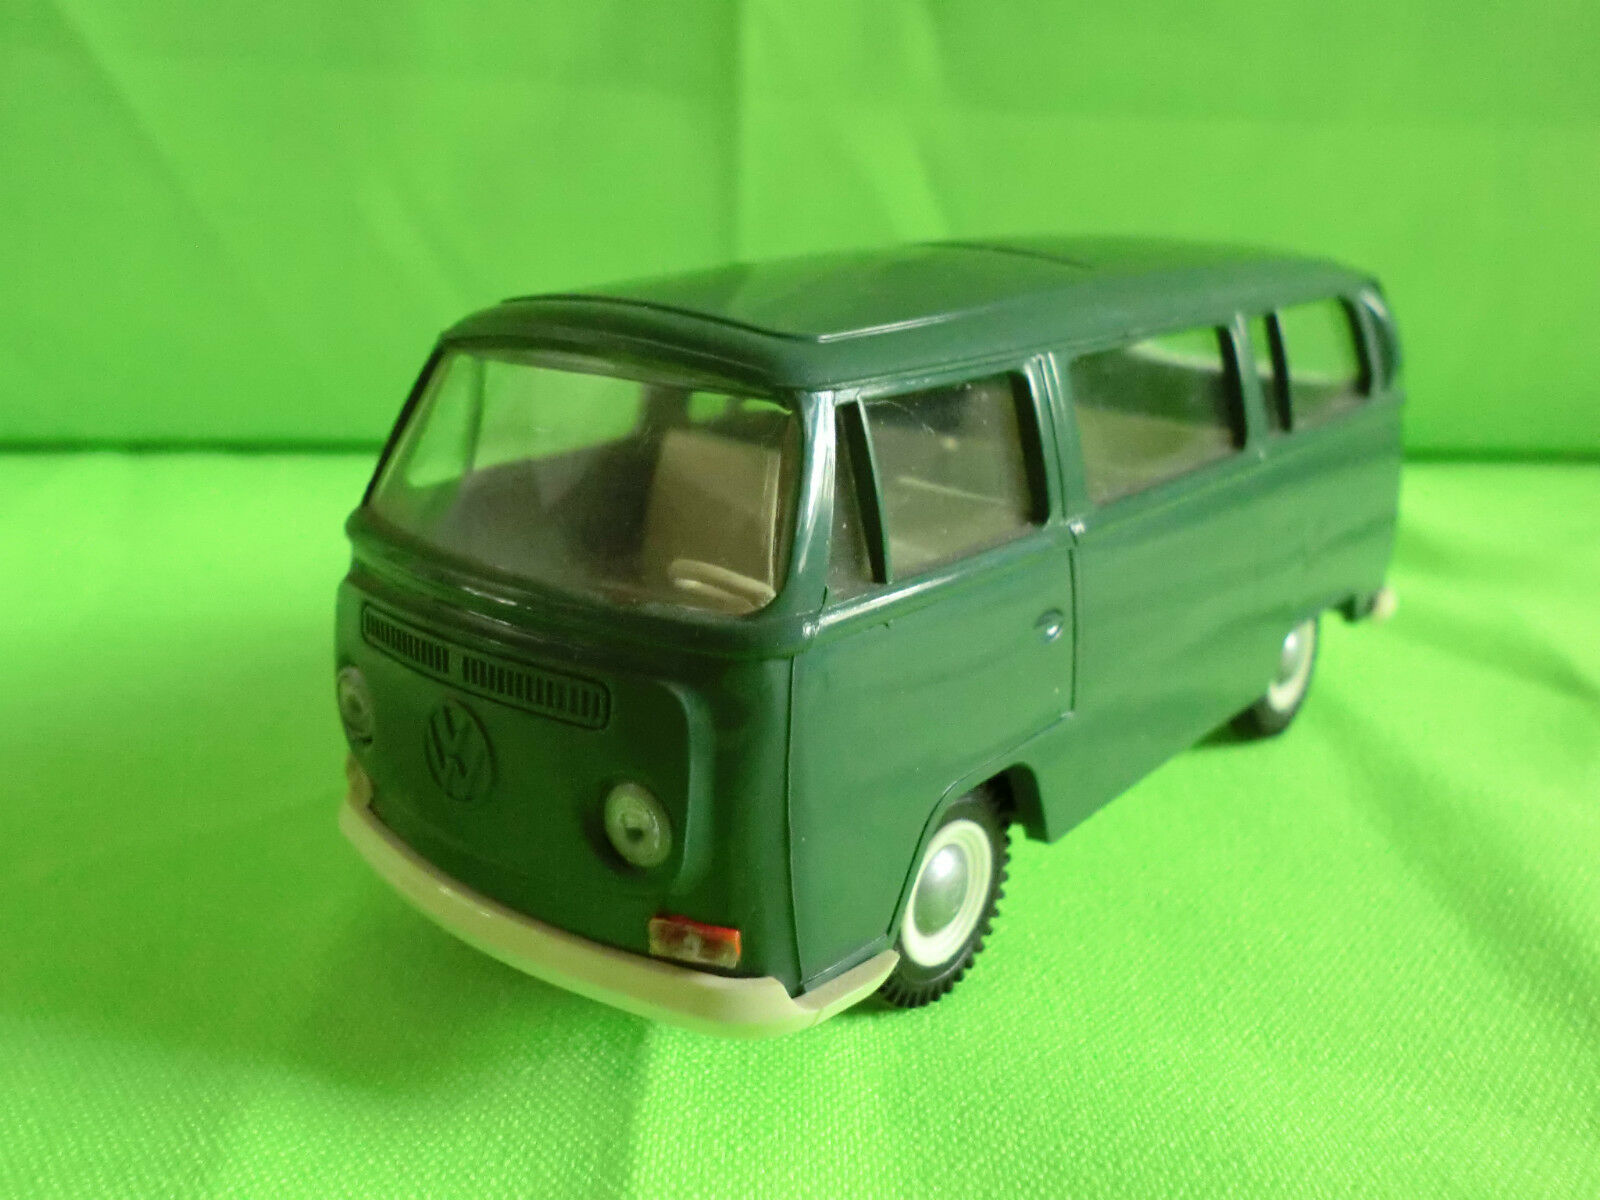 CURSOR CURSOR CURSOR 1 40  VW VOLKSWAGEN   VW BUS - VINTAGE  GREEN    IN NEAR  MINT CONDITION e6abaa